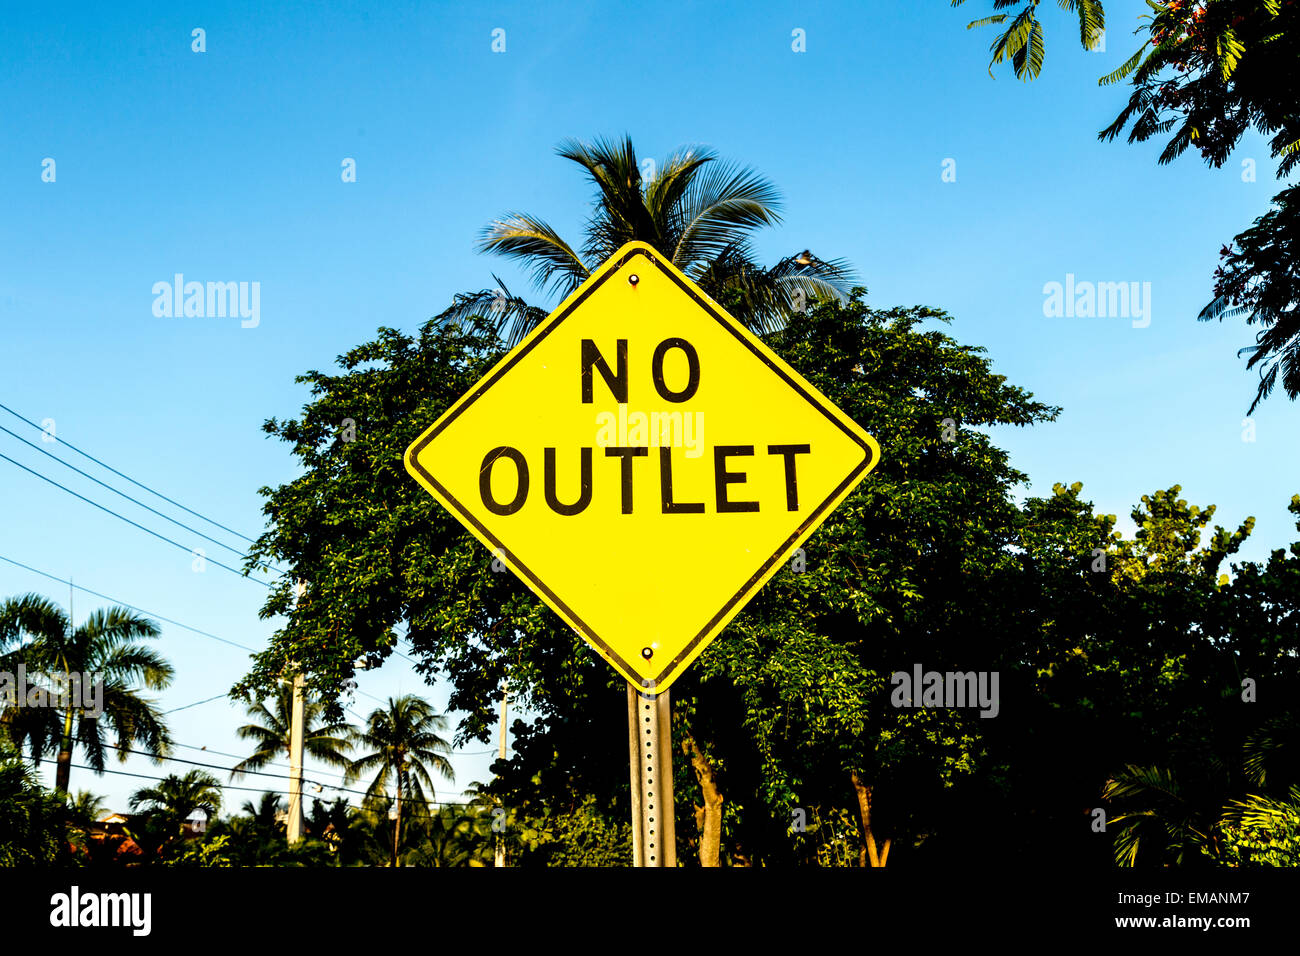 no outlet sign in yellow at the street - Stock Image